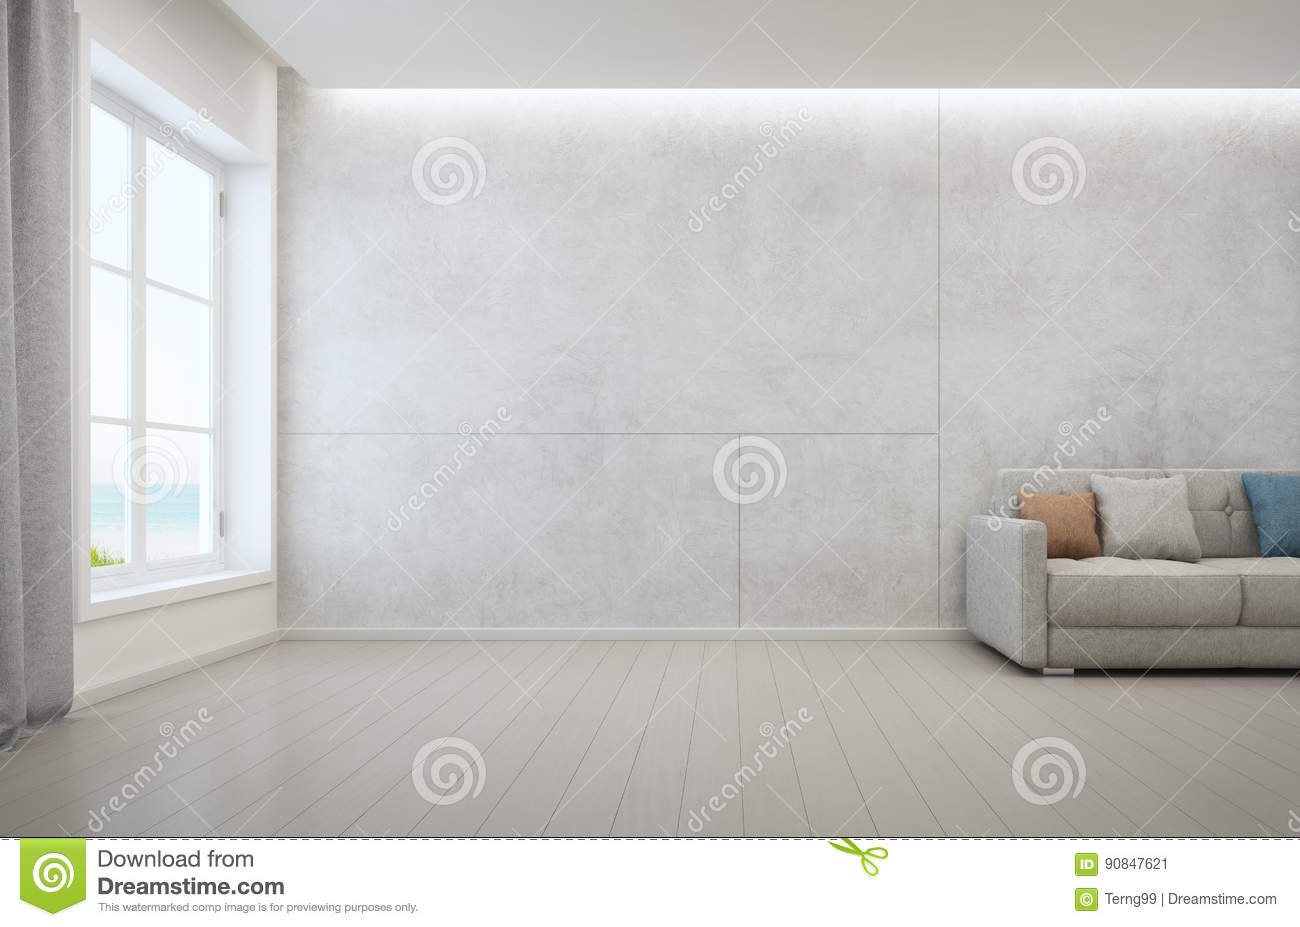 Sea View Living Room With Wooden Floor And Concrete Wall Background